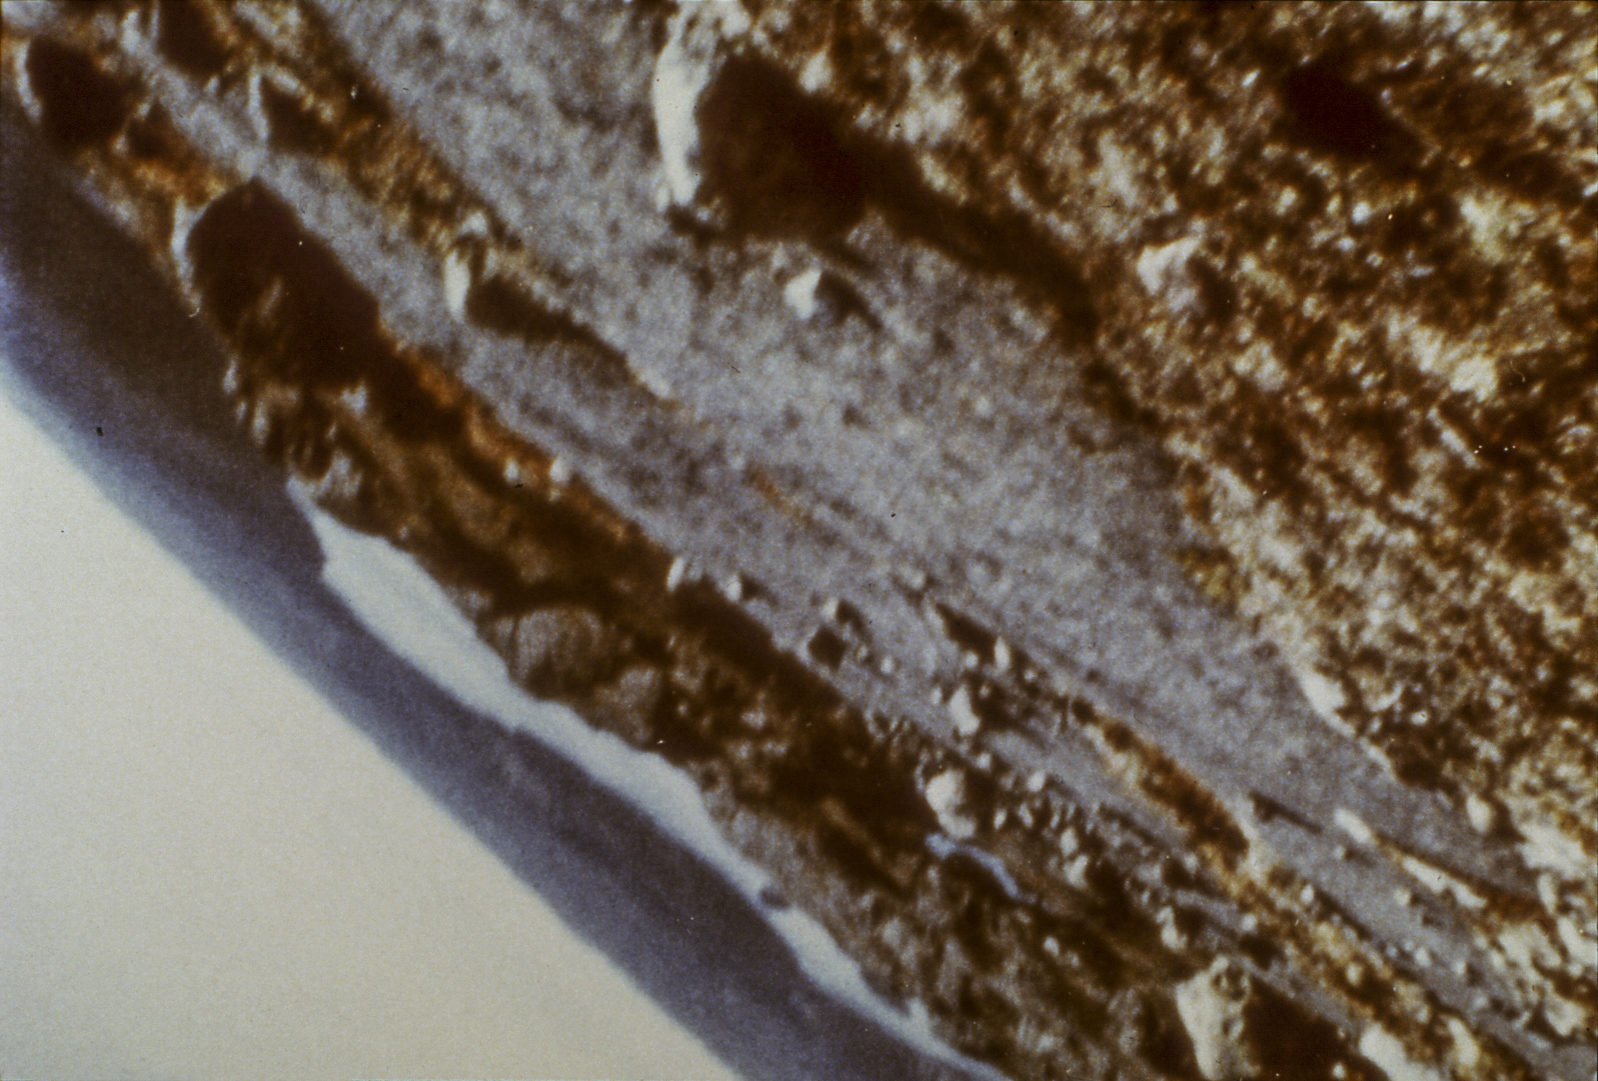 This image taken from the film shows a landscape tilted at a 145-degree angle. The horizon and a bit of clear sky are compressed into the bottom left corner. The rocky ground occupies most of the image.